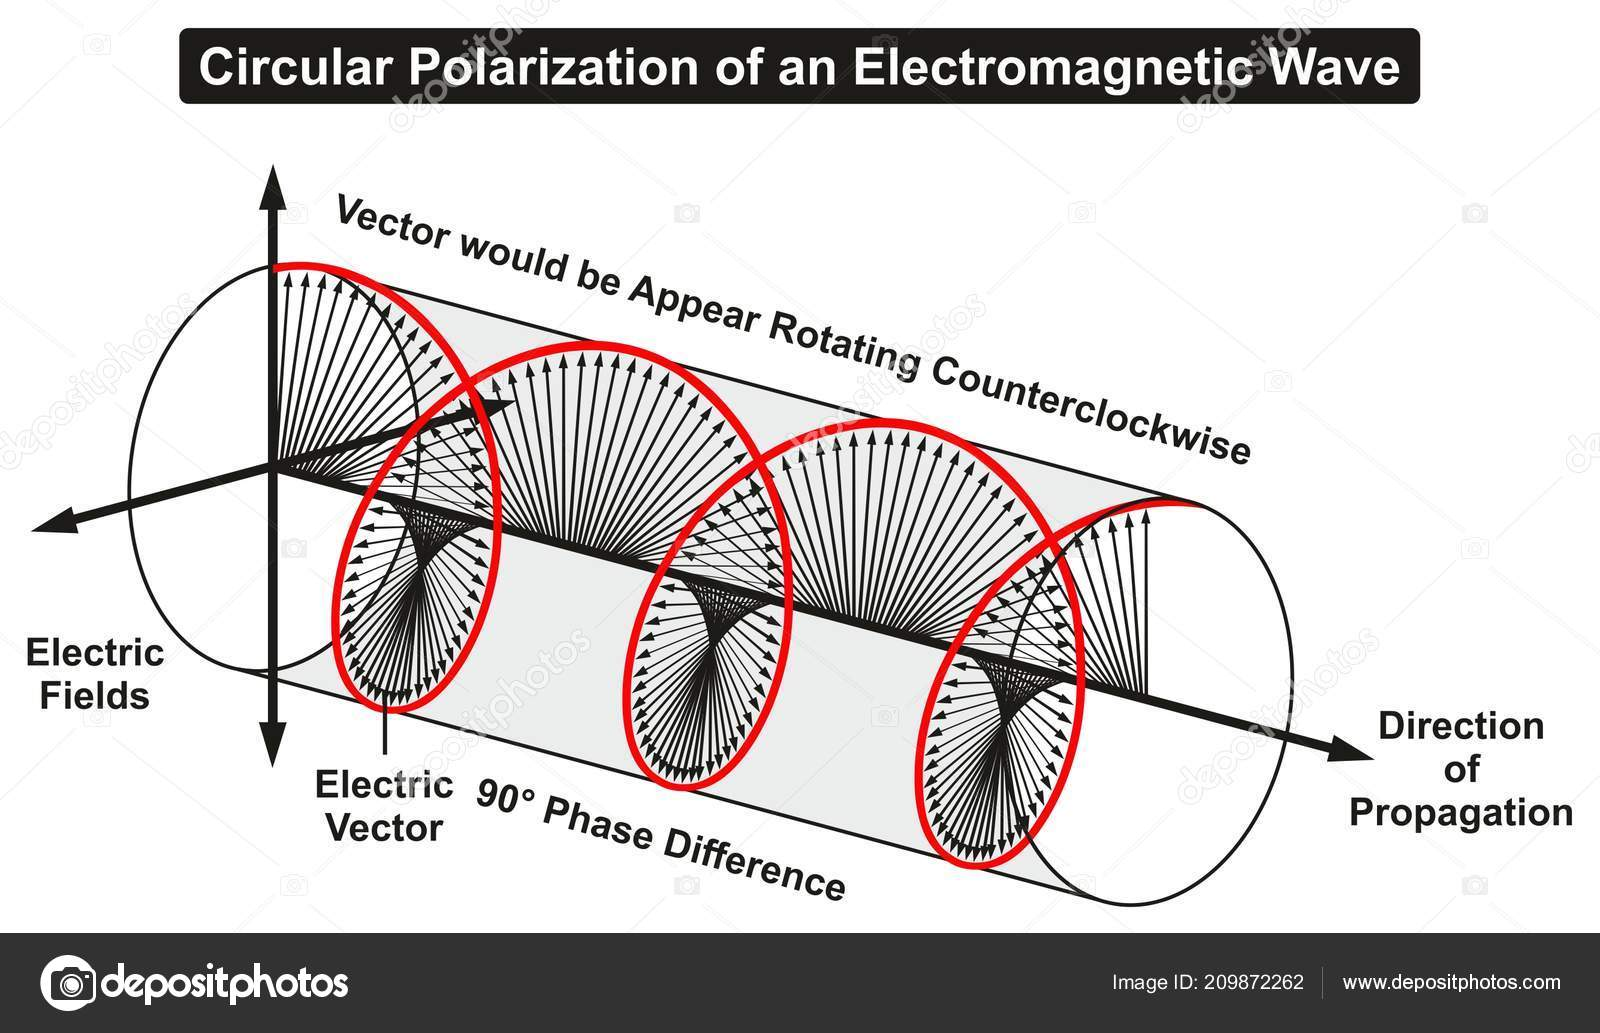 hight resolution of circular polarization of an electromagnetic light wave infographic diagram showing electric fields phase difference direction of propagation rotating